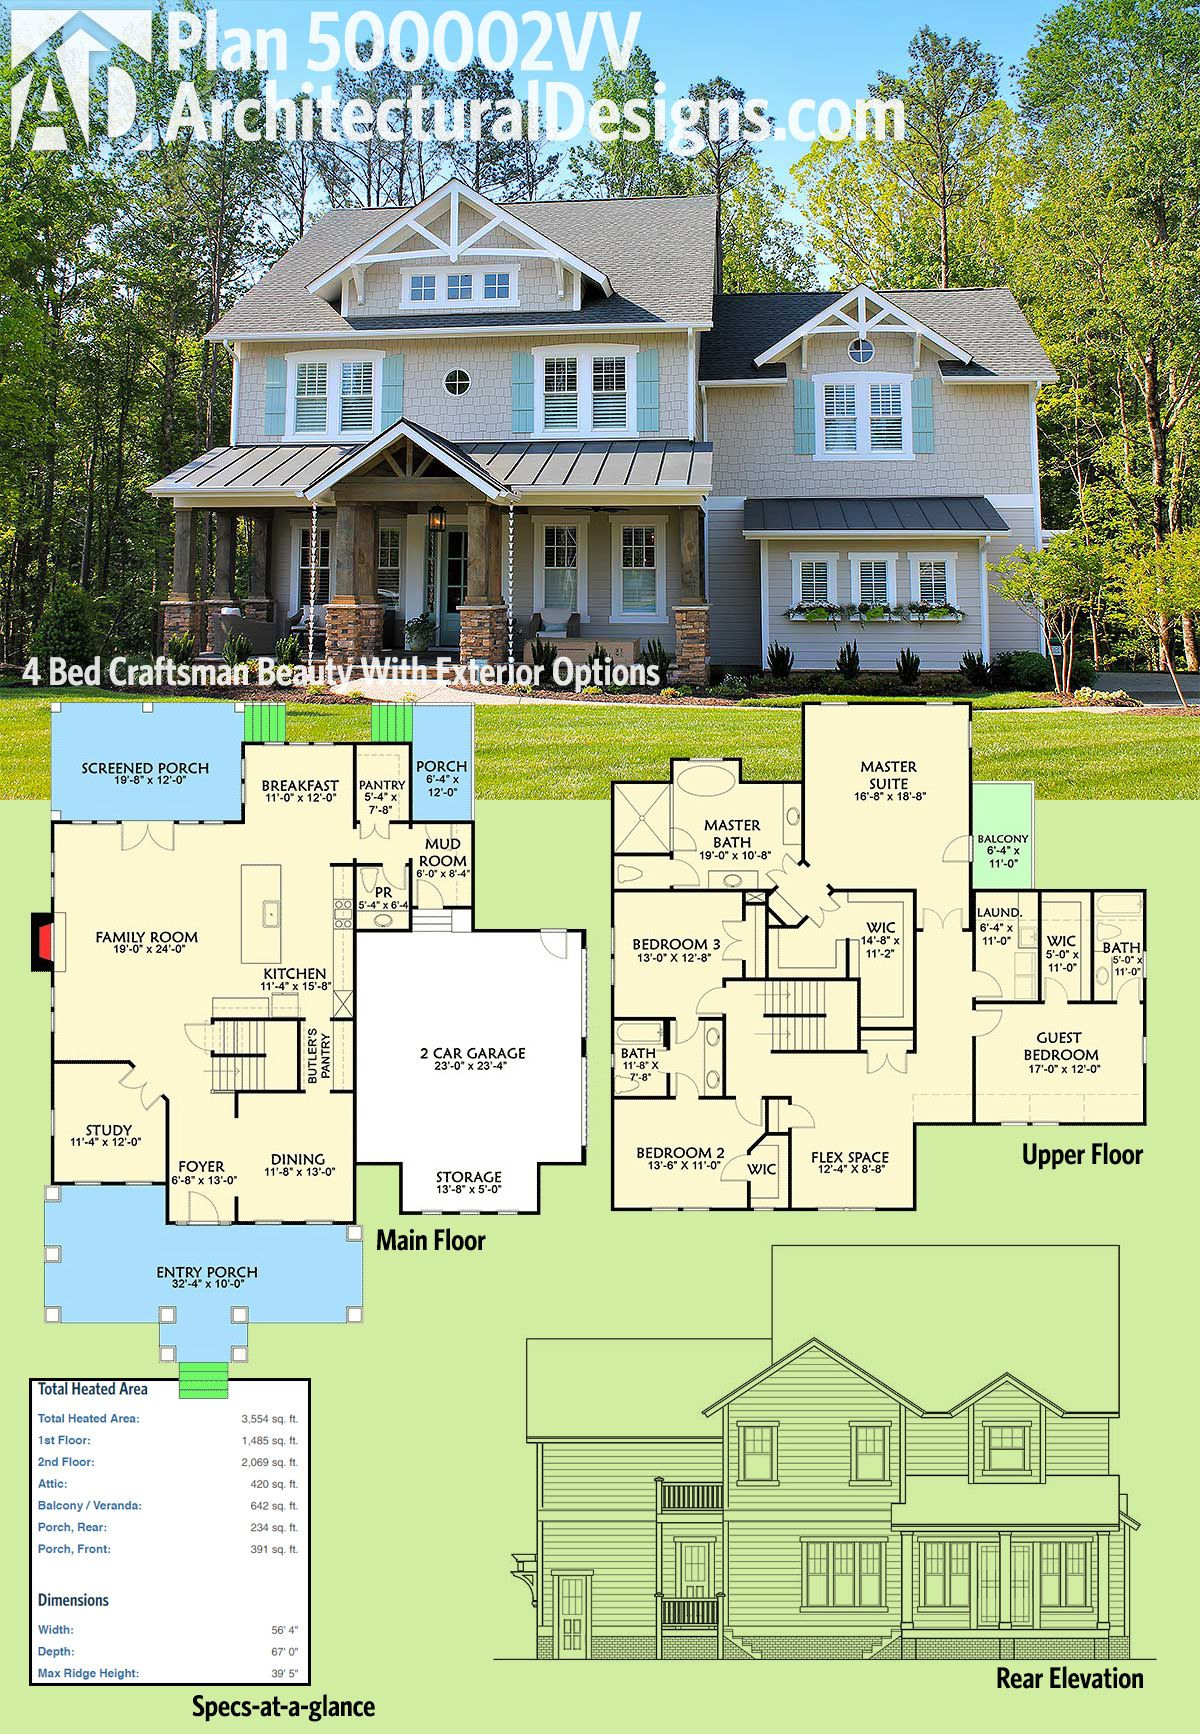 4 Storey House Design: Plan 500002VV: 4 Bed Craftsman Beauty With Exterior